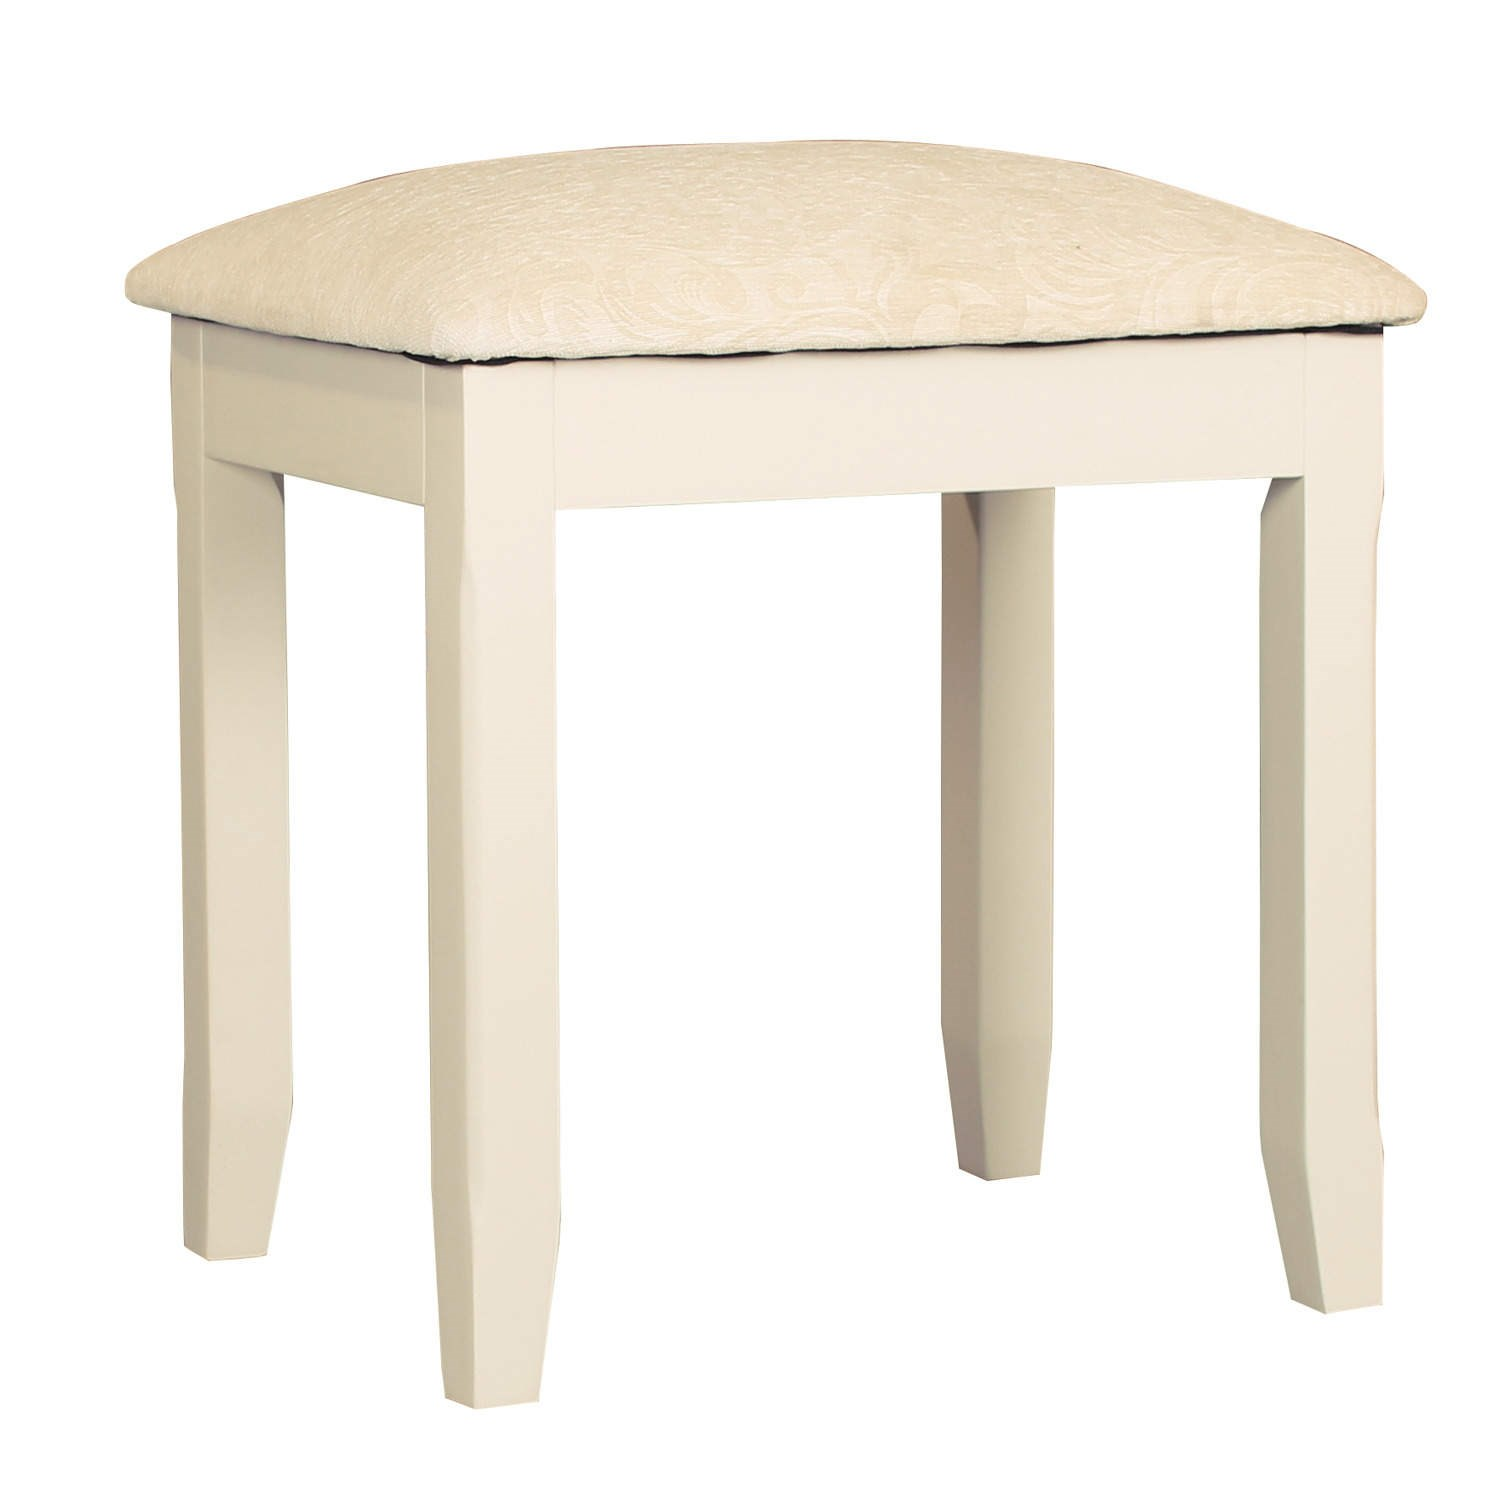 Wonderful image of Savannah Solid Acacia Wood Dressing Table Stool in Ivory SAV008 eBay with #91743A color and 1500x1500 pixels